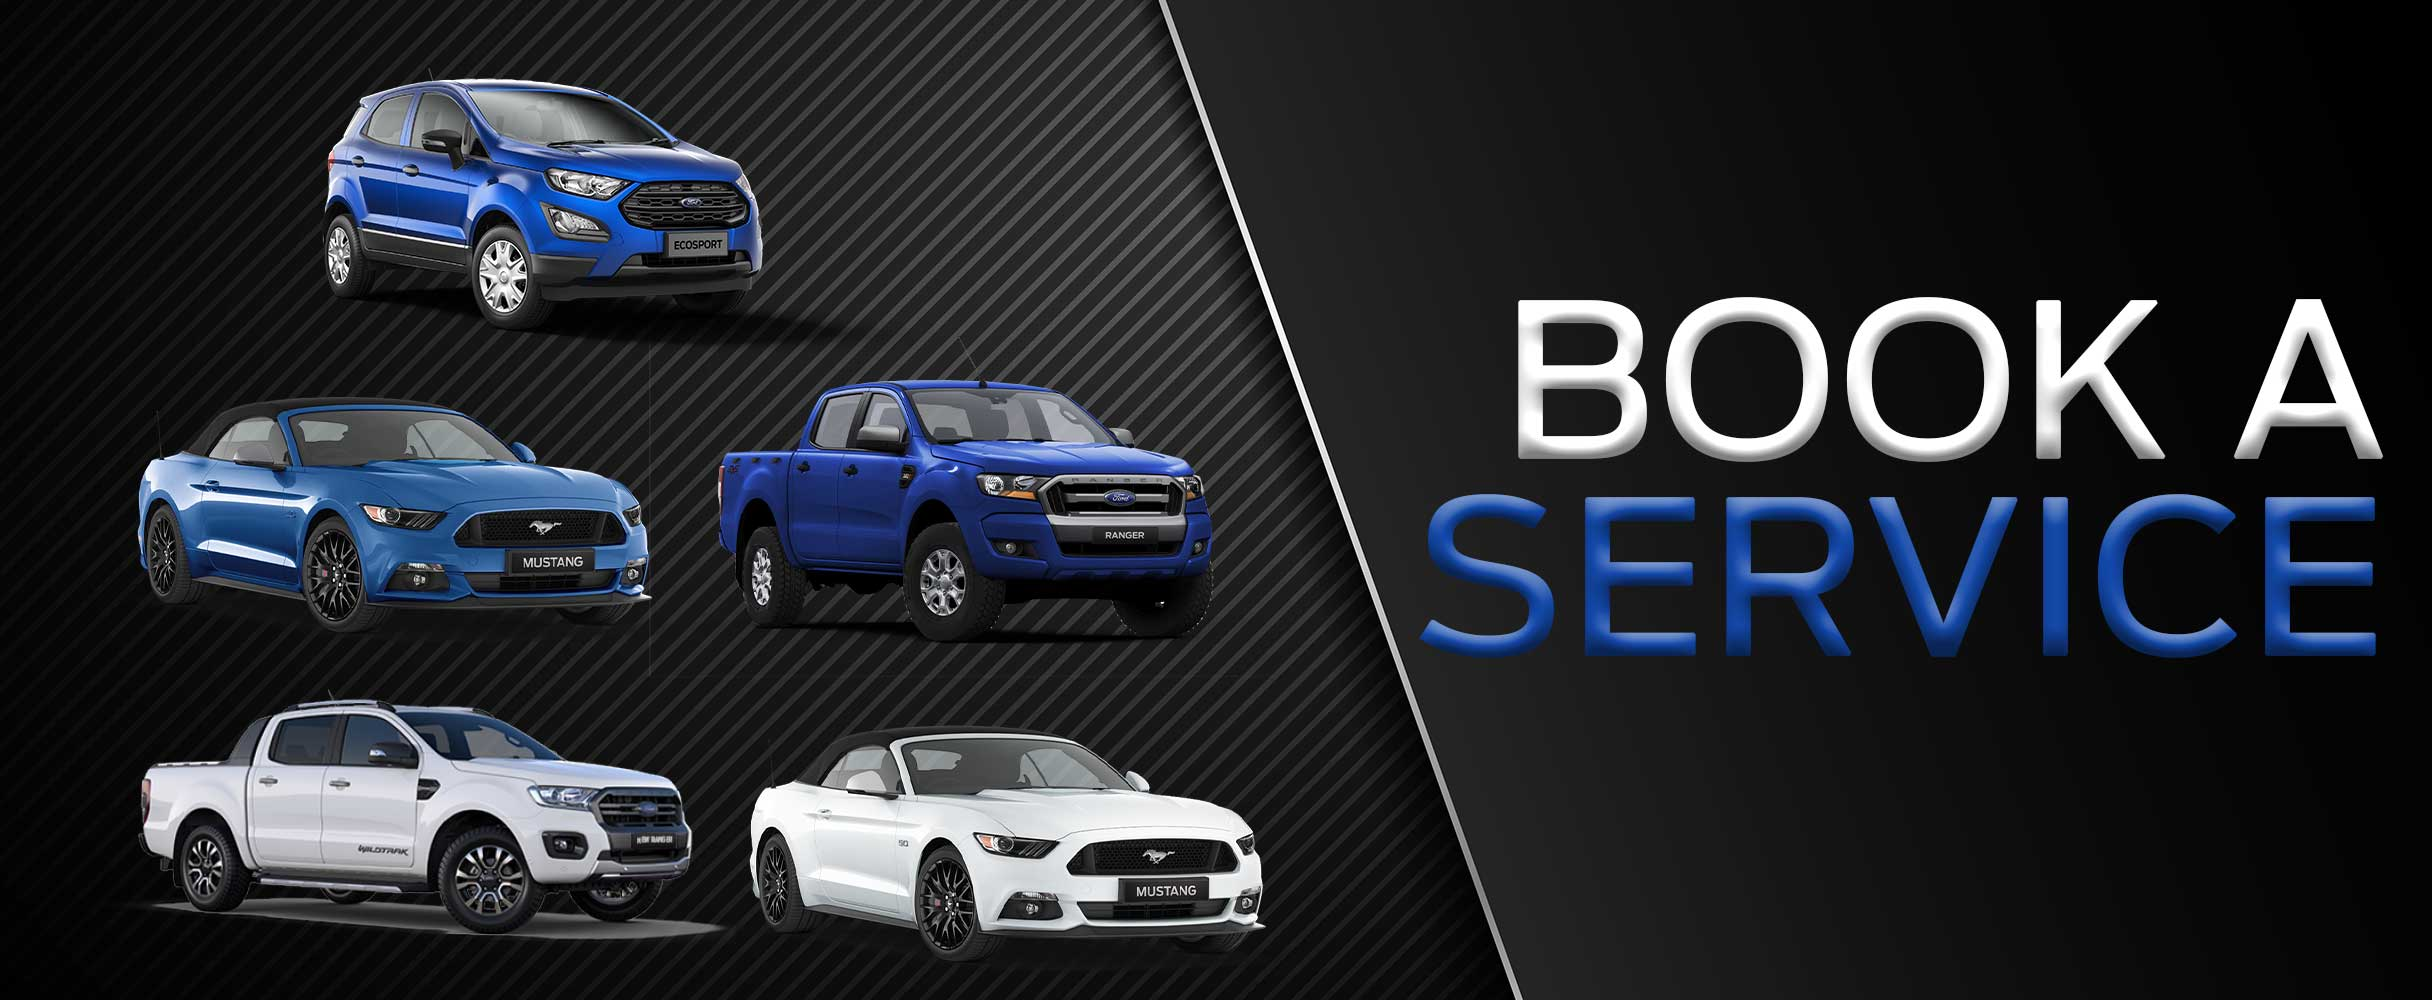 Book a service at ford bruma